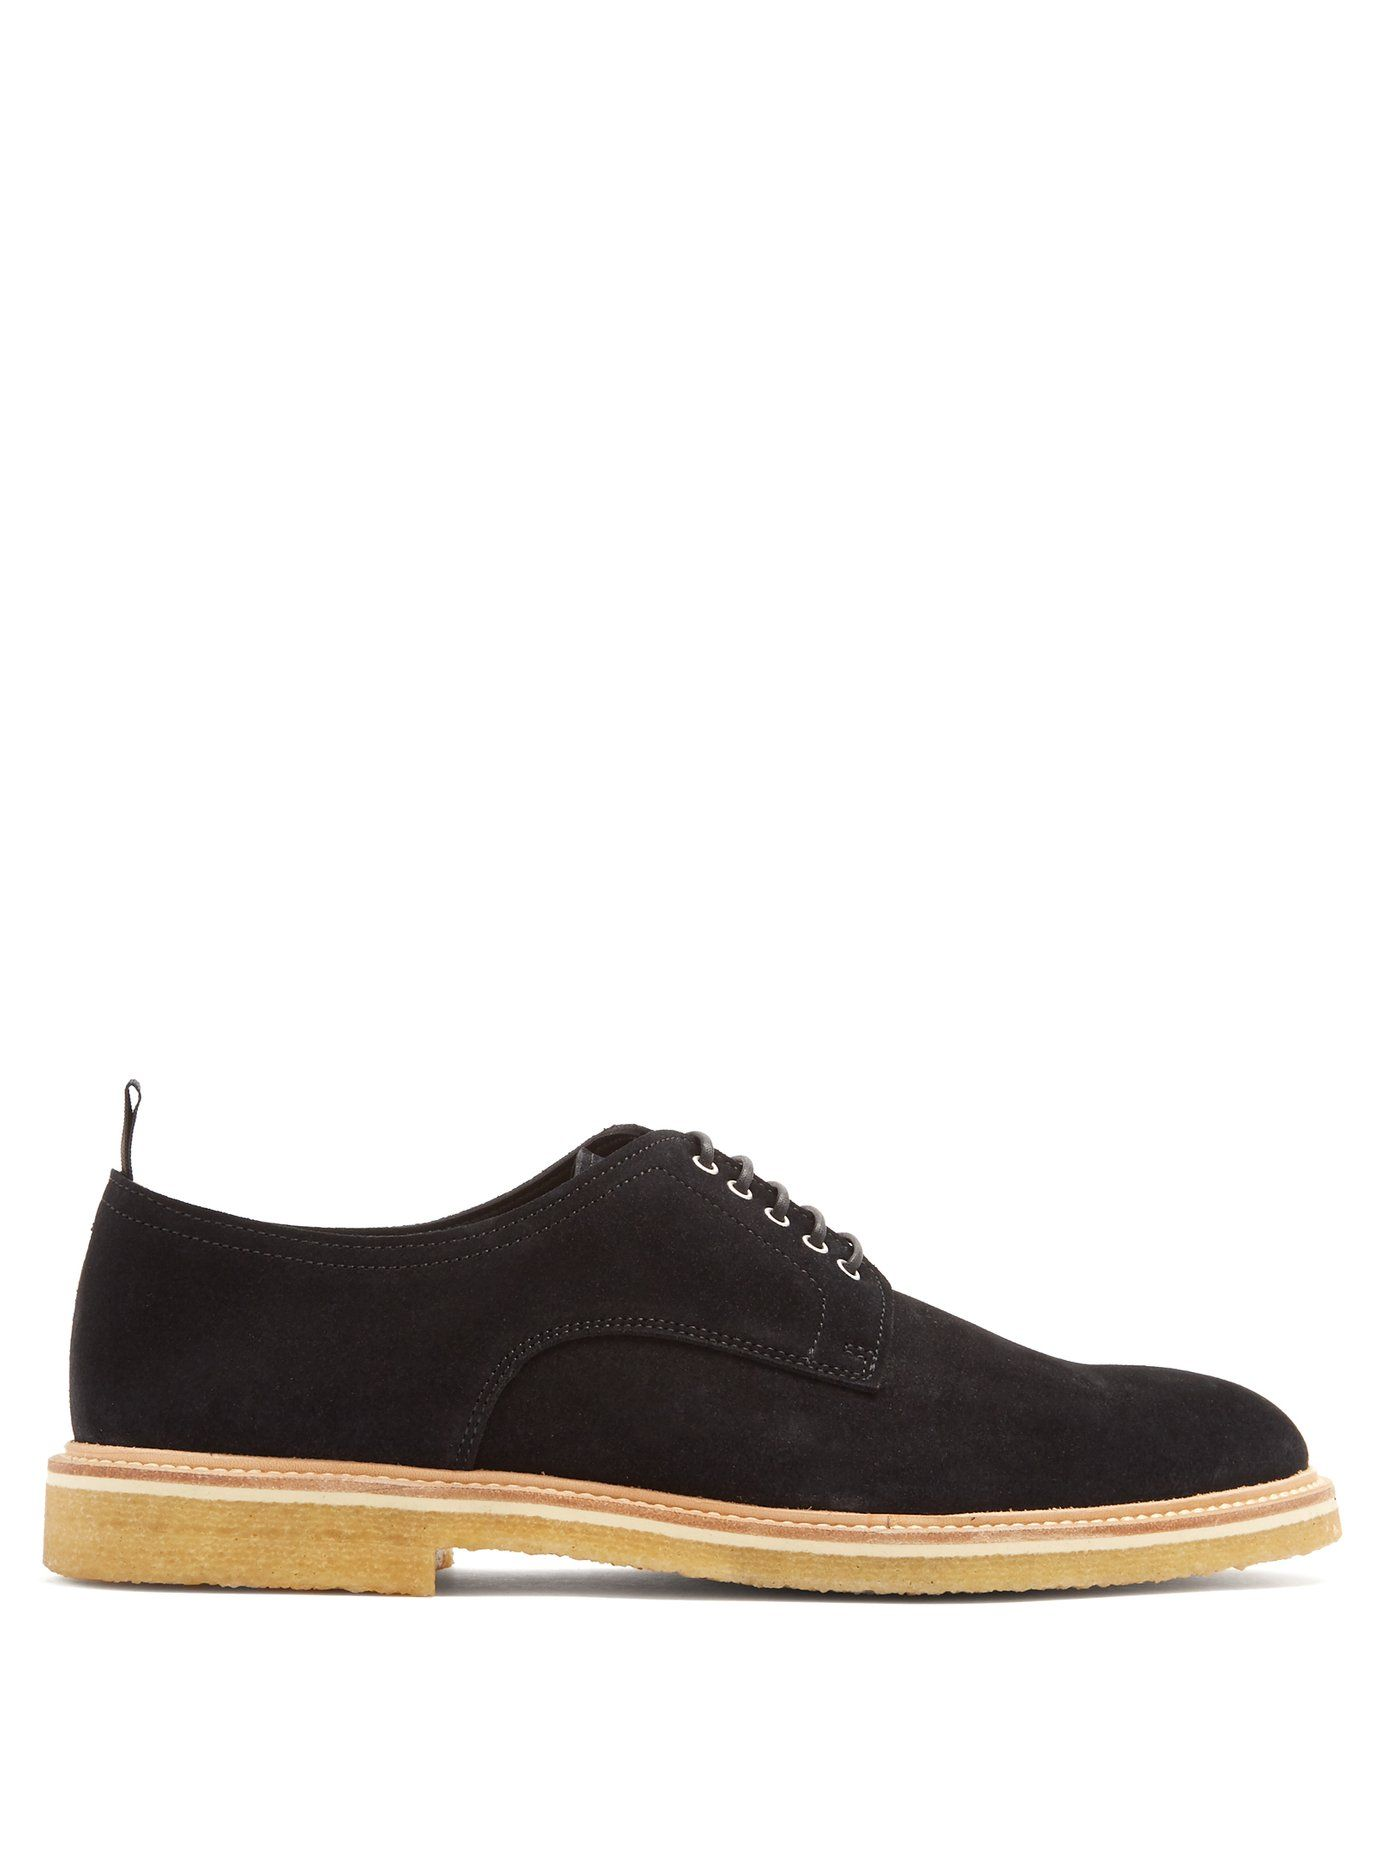 Buy Cheap Supply Astor derby shoes Armando Cabral Clearance Store For Sale 5XoYXBt